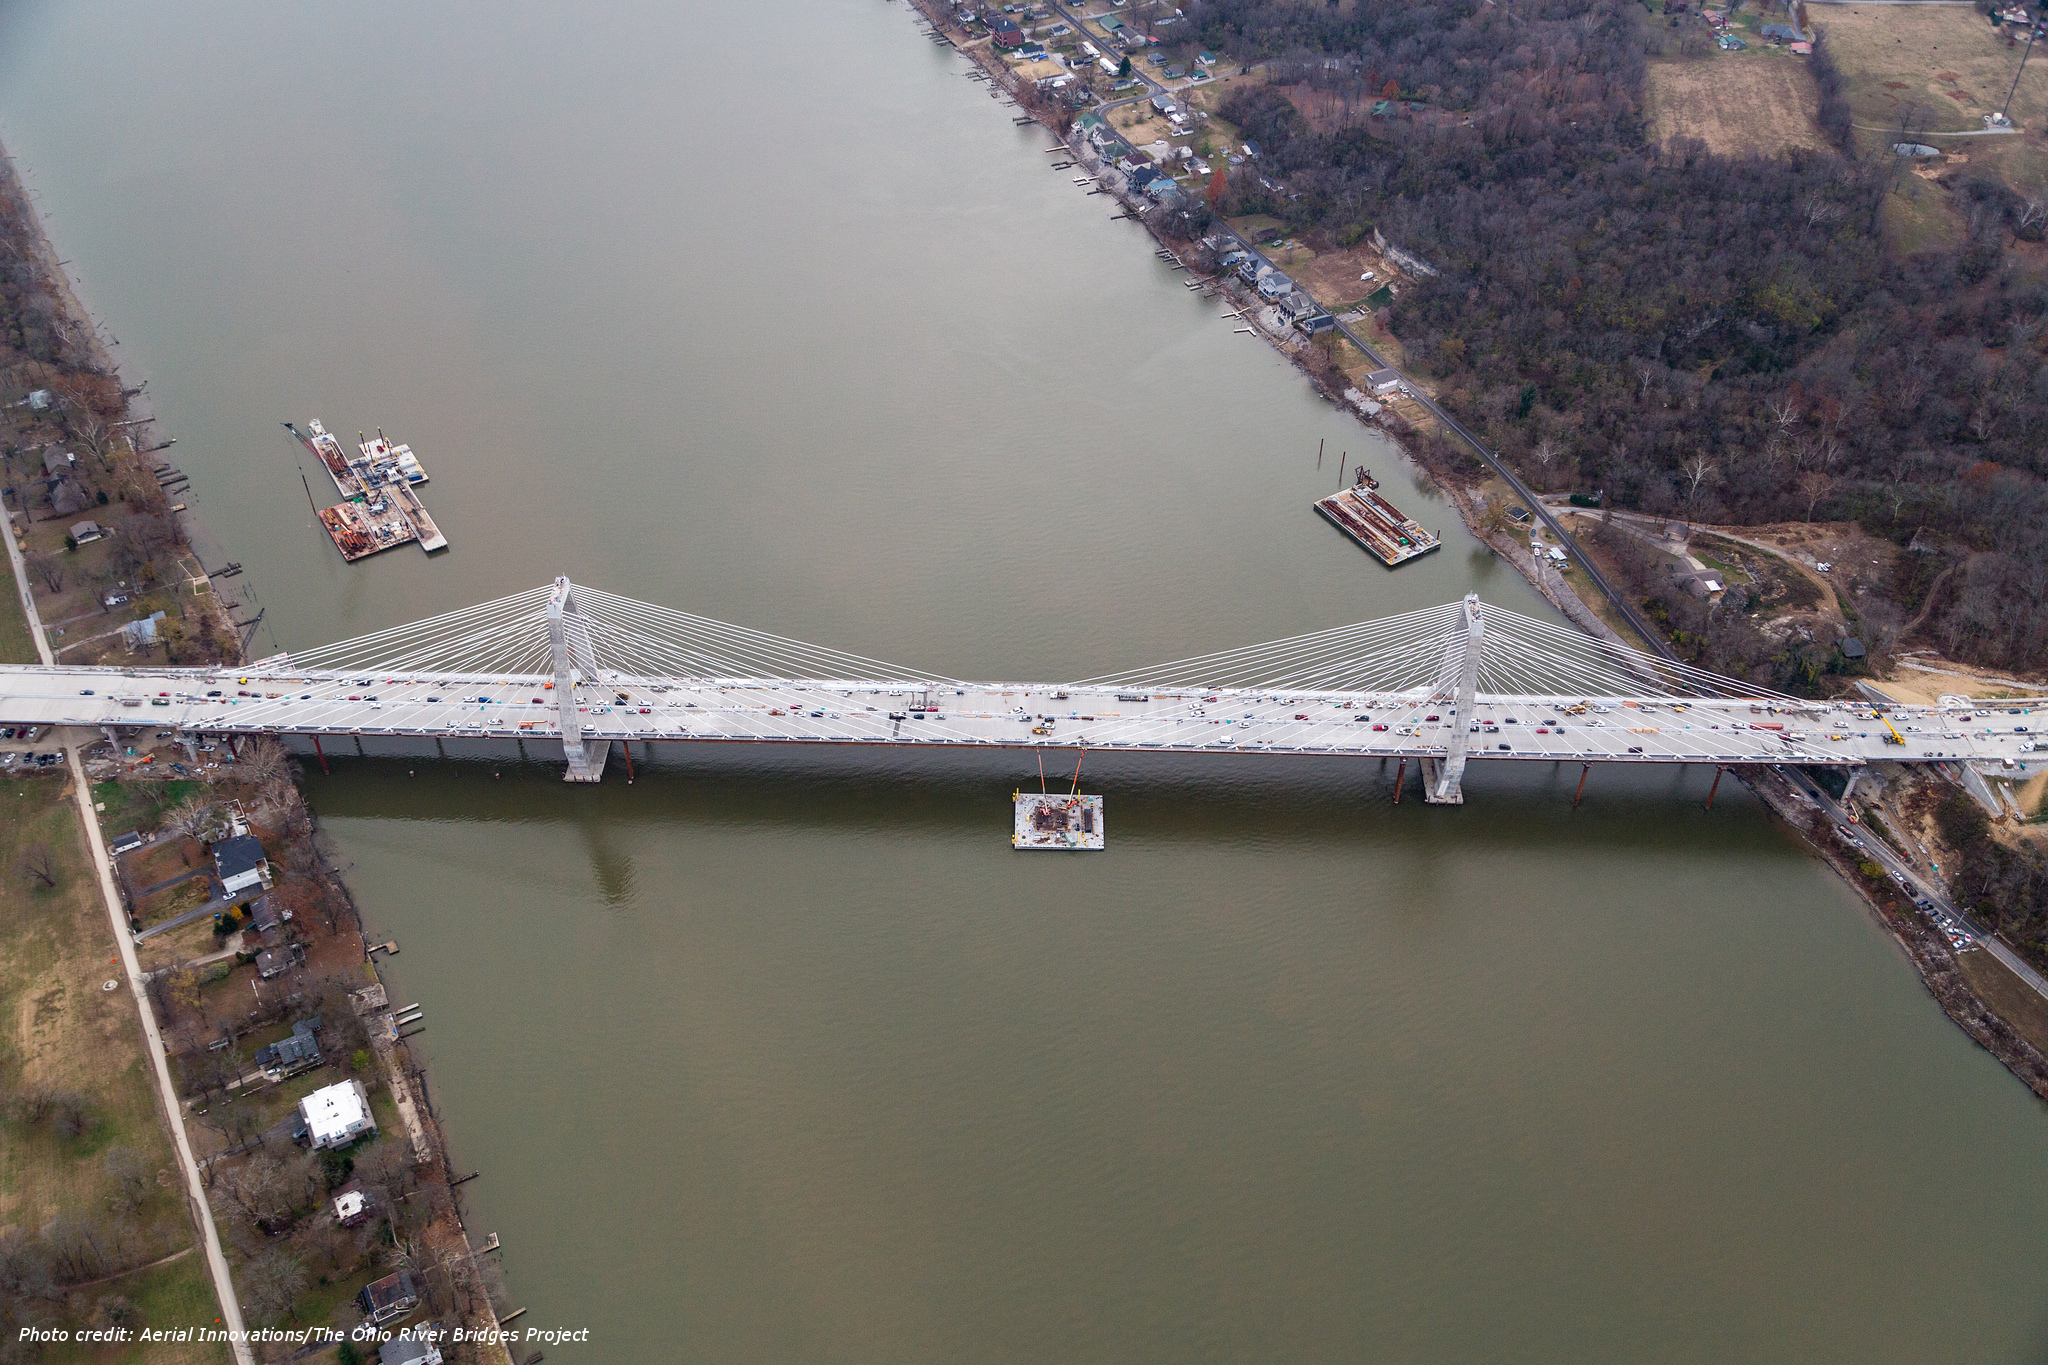 EastEndCrossing-AerialInnovations.jpg